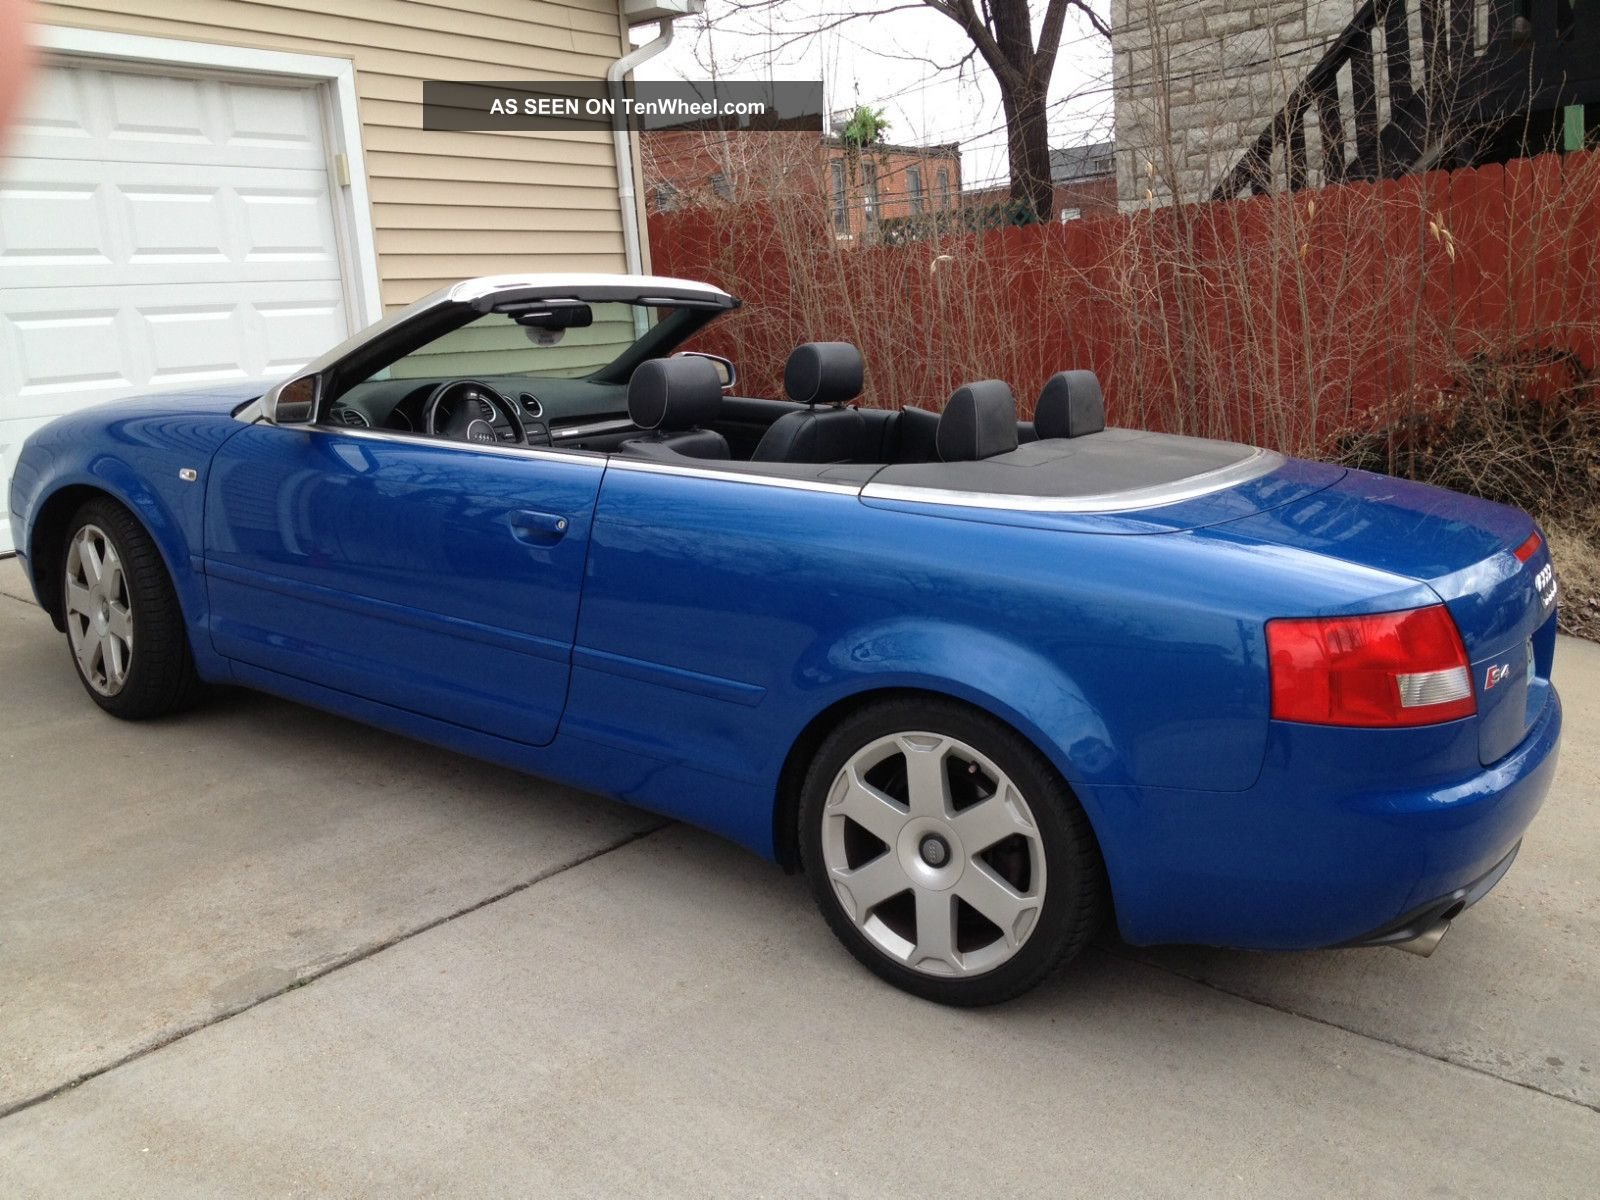 2004 audi s4 cabriolet convertible 2 door 4 2l. Black Bedroom Furniture Sets. Home Design Ideas